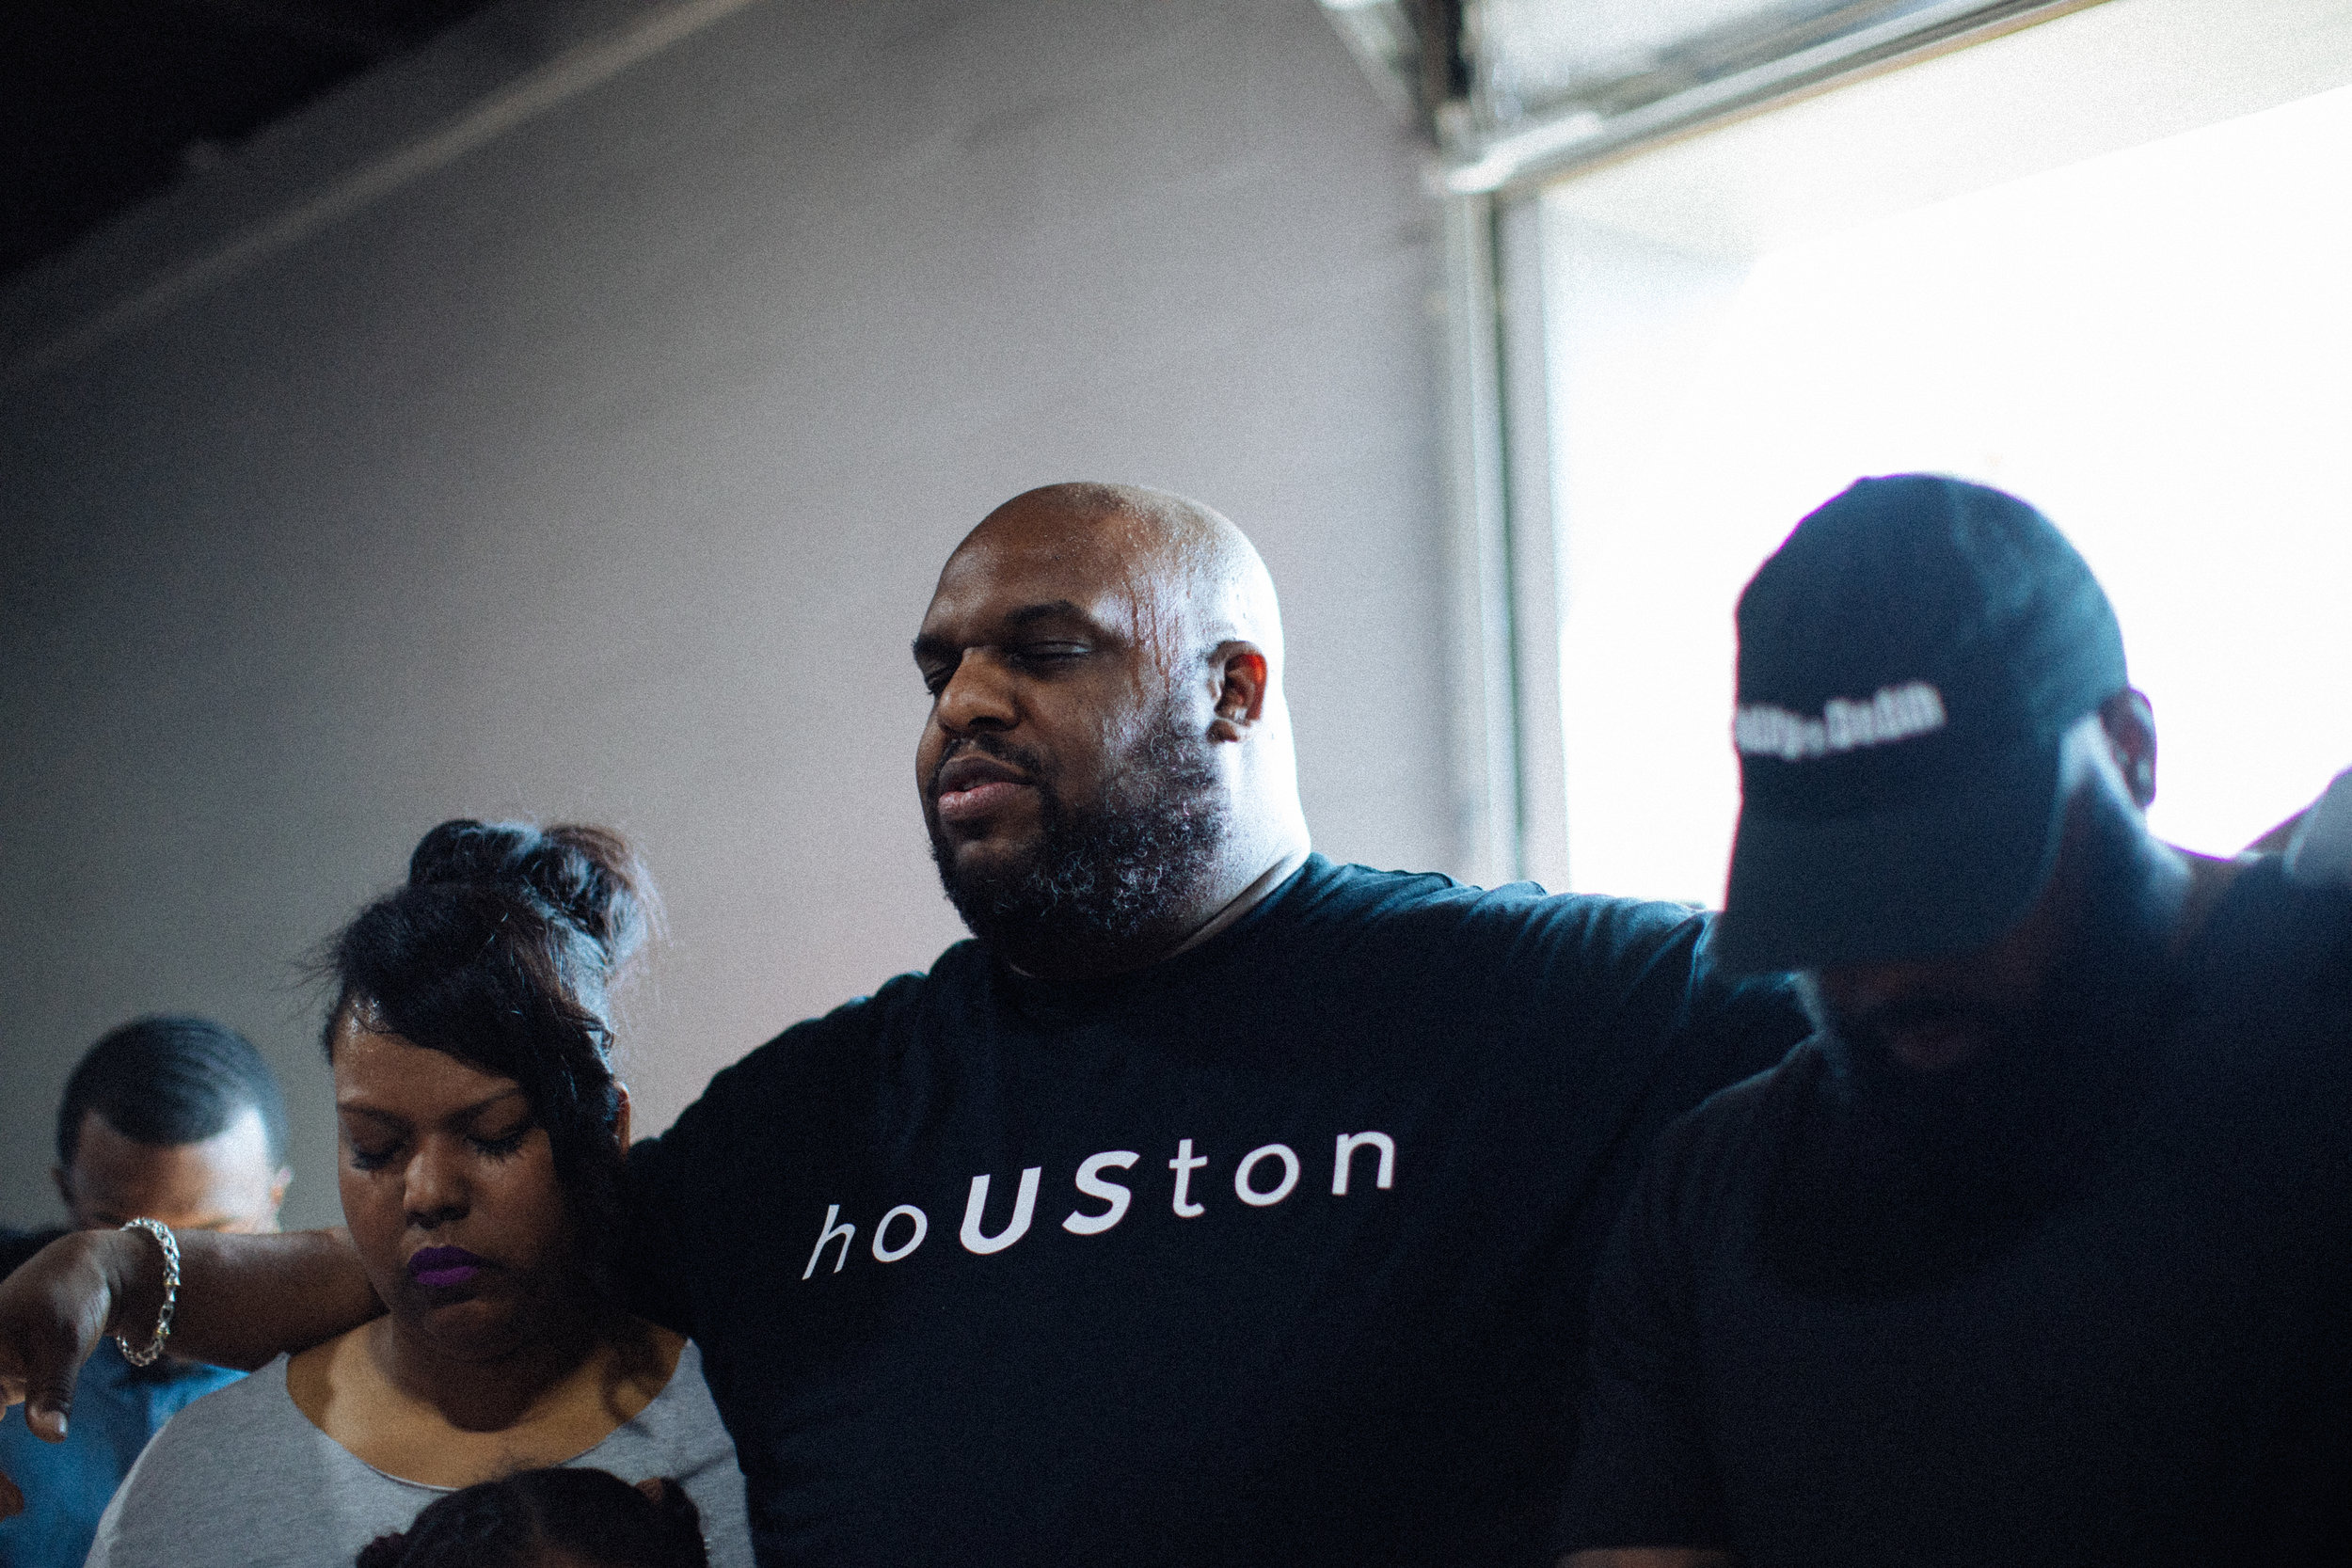 BY SERVING - When you partner with John Gray Ministries, you contribute to the vision of sharing the gospel of Jesus Christ. We believe that we lock arms together and carry out a heart to serve as a body to meet the needs of people and make a difference in our communities locally and internationally.